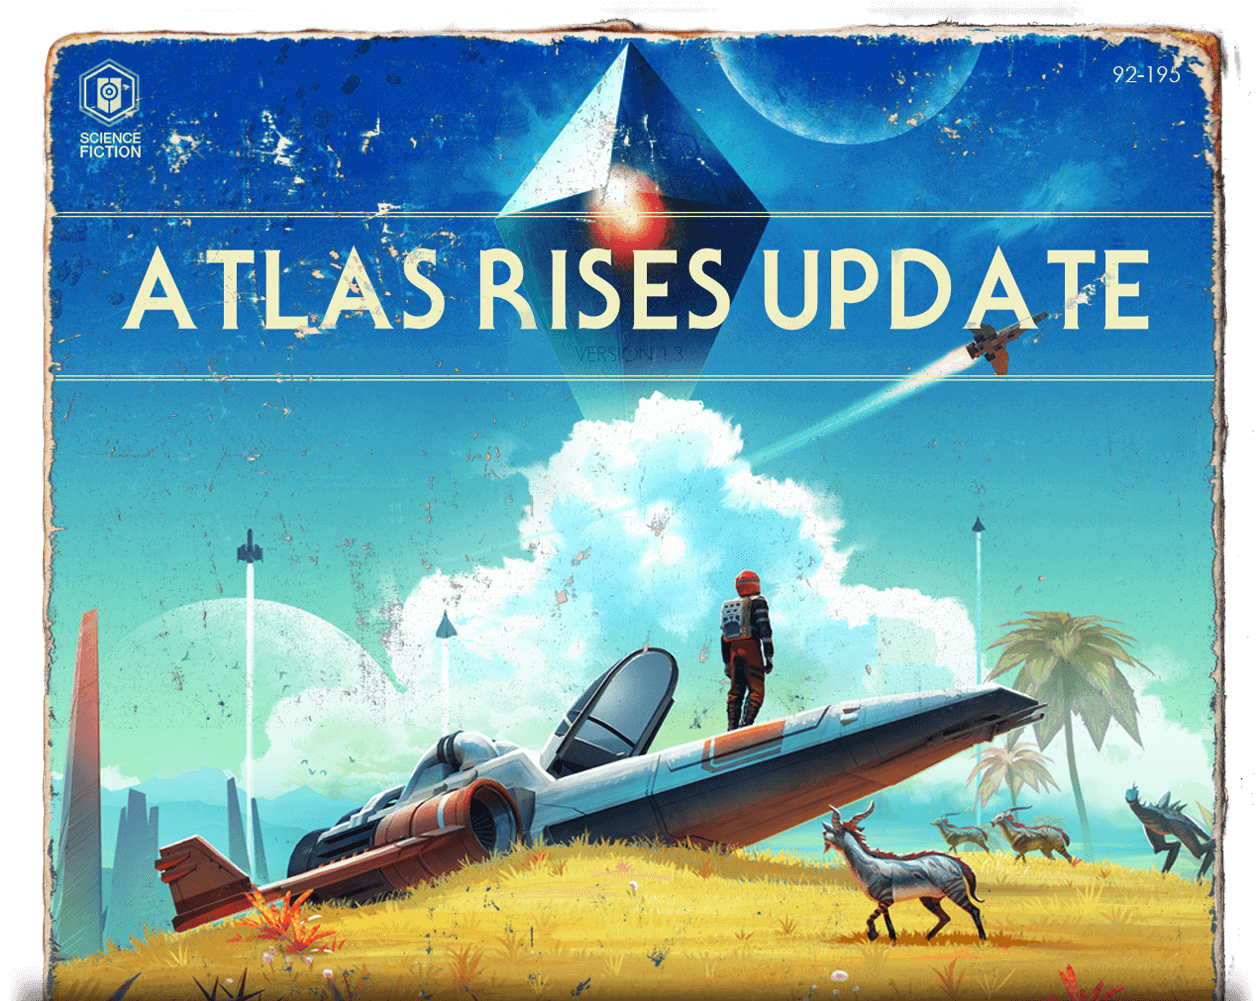 No Mans Skys Atlas Rises Update Exemplifies A New Kind Of